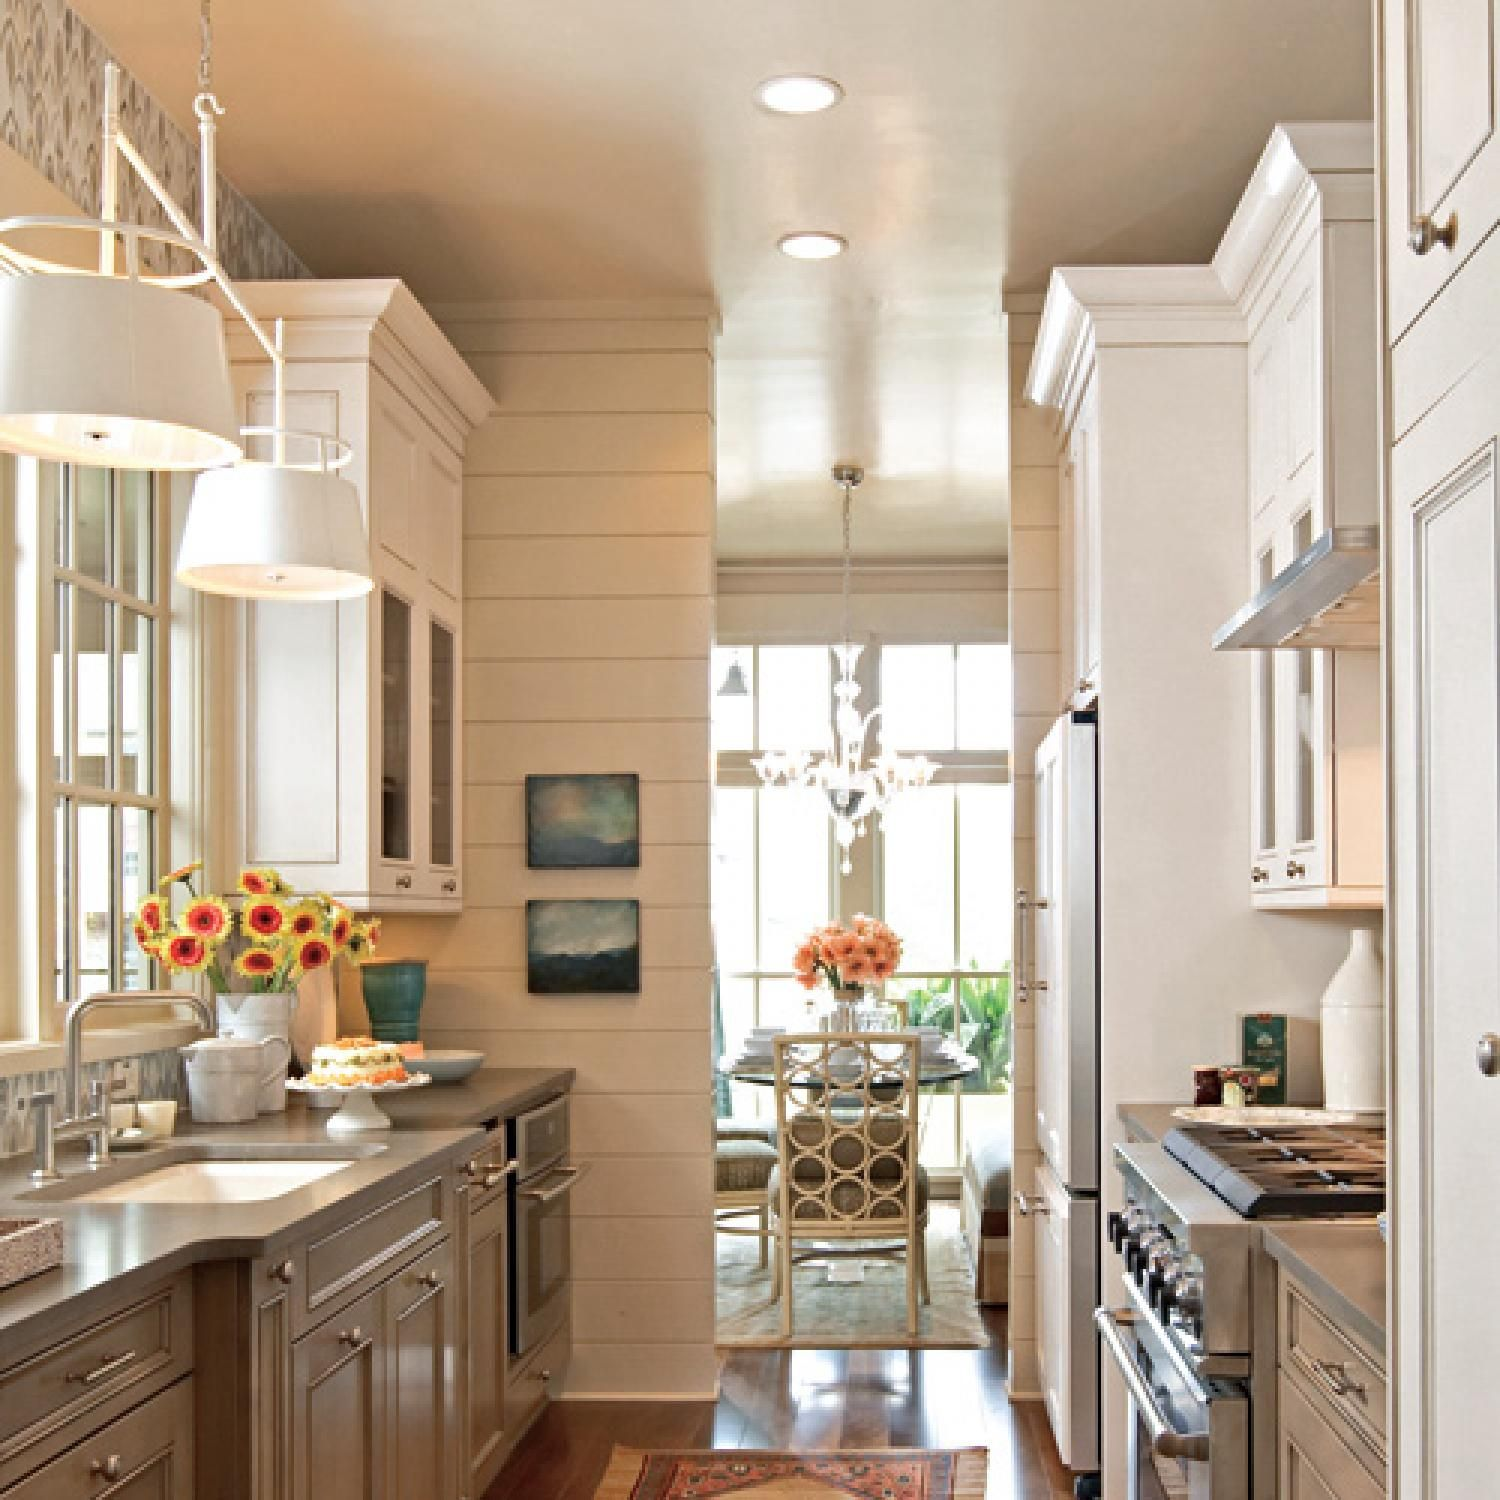 28 Antique White Kitchen Cabinets Ideas In 2019: Beautiful, Efficient Small Kitchens In 2019